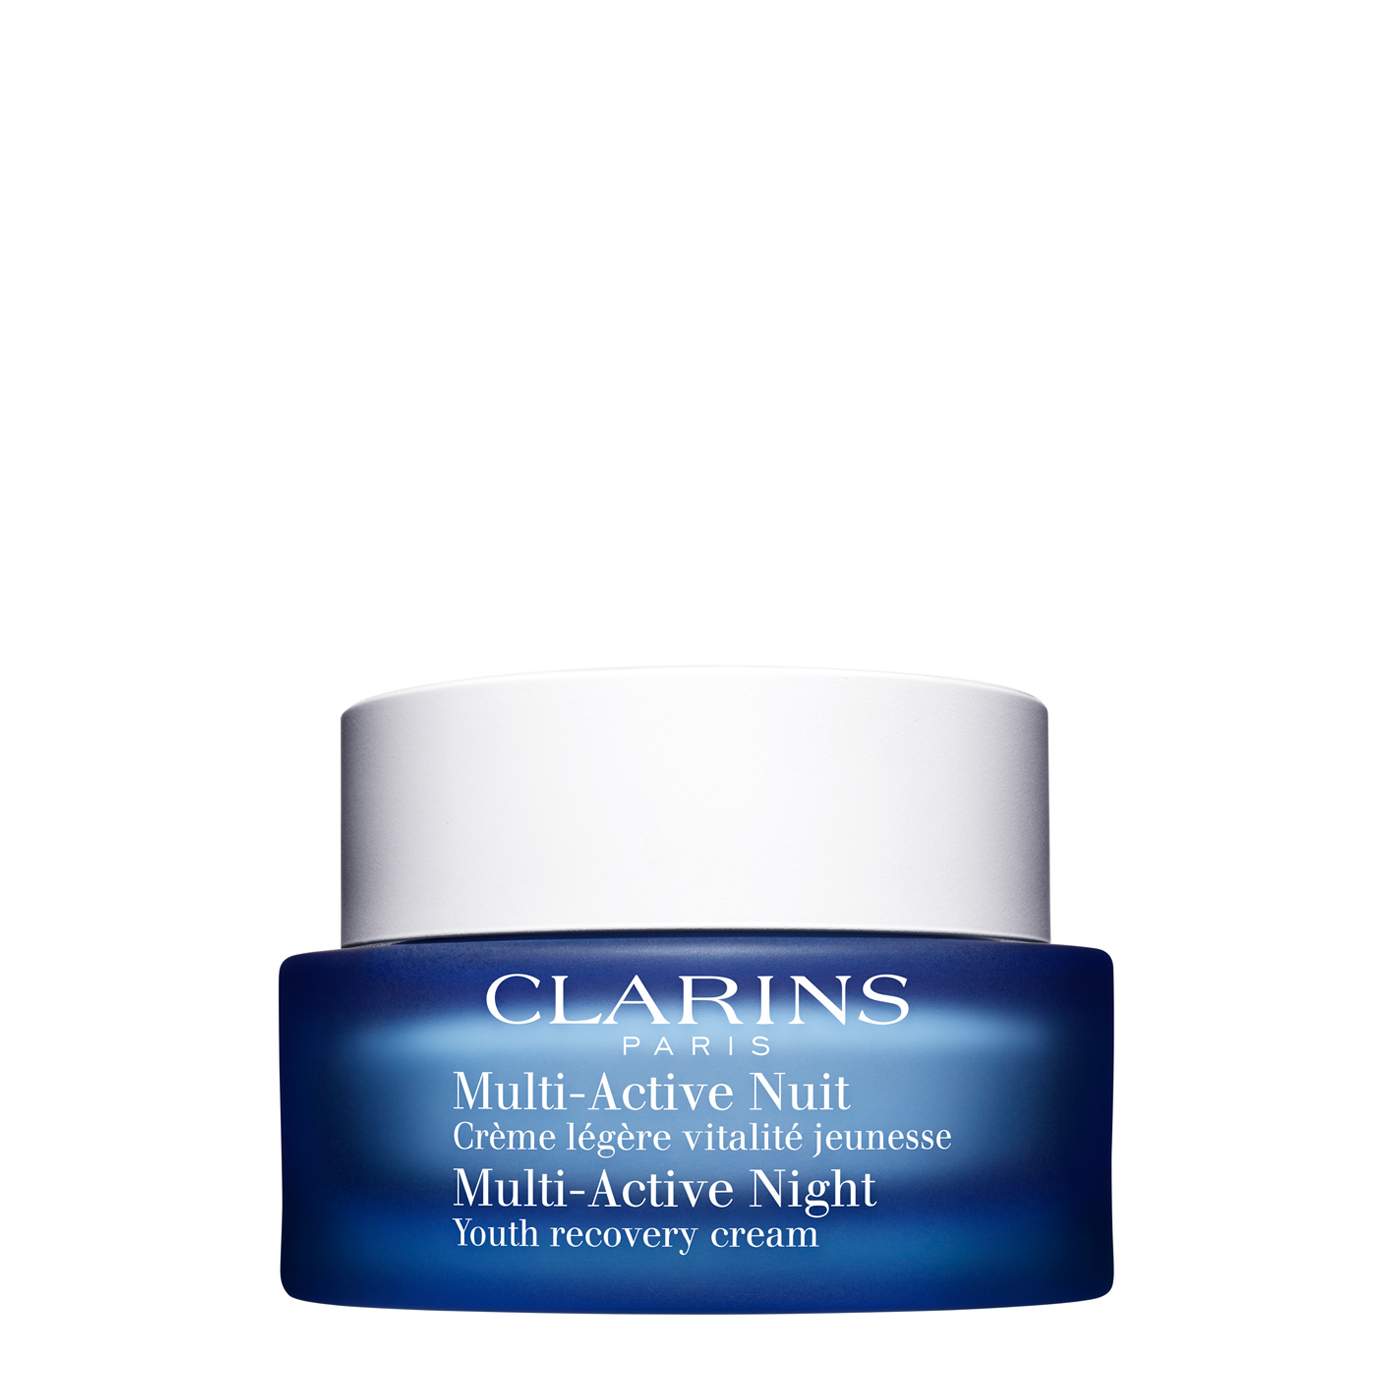 """3. """"I love this cream because it not only provides moisture, but also lets me forget about future lines and wrinkles. I want to prolong aging for as long as possible."""" - Rebecca P. #Clarins #MustHaves"""